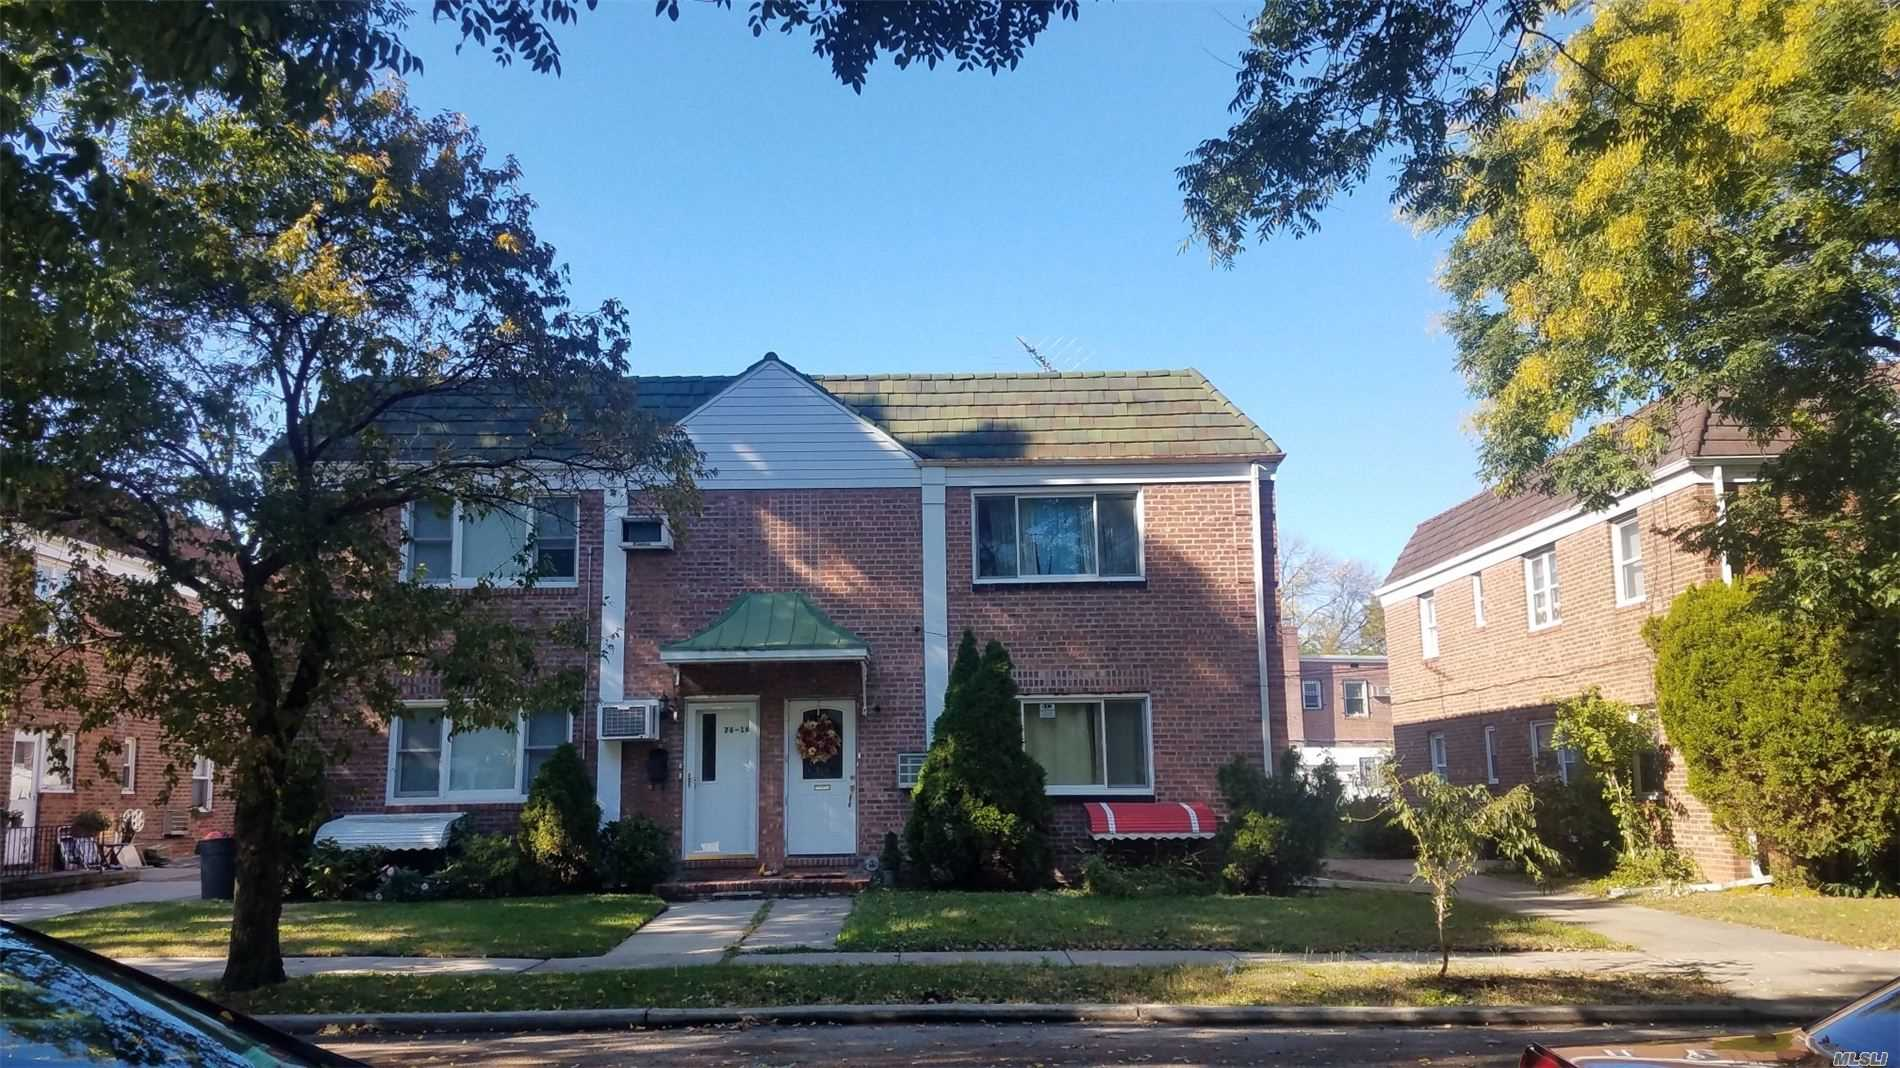 Property for sale at 76-14 170th Street, Fresh Meadows NY 11366, Fresh Meadows,  New York 11366